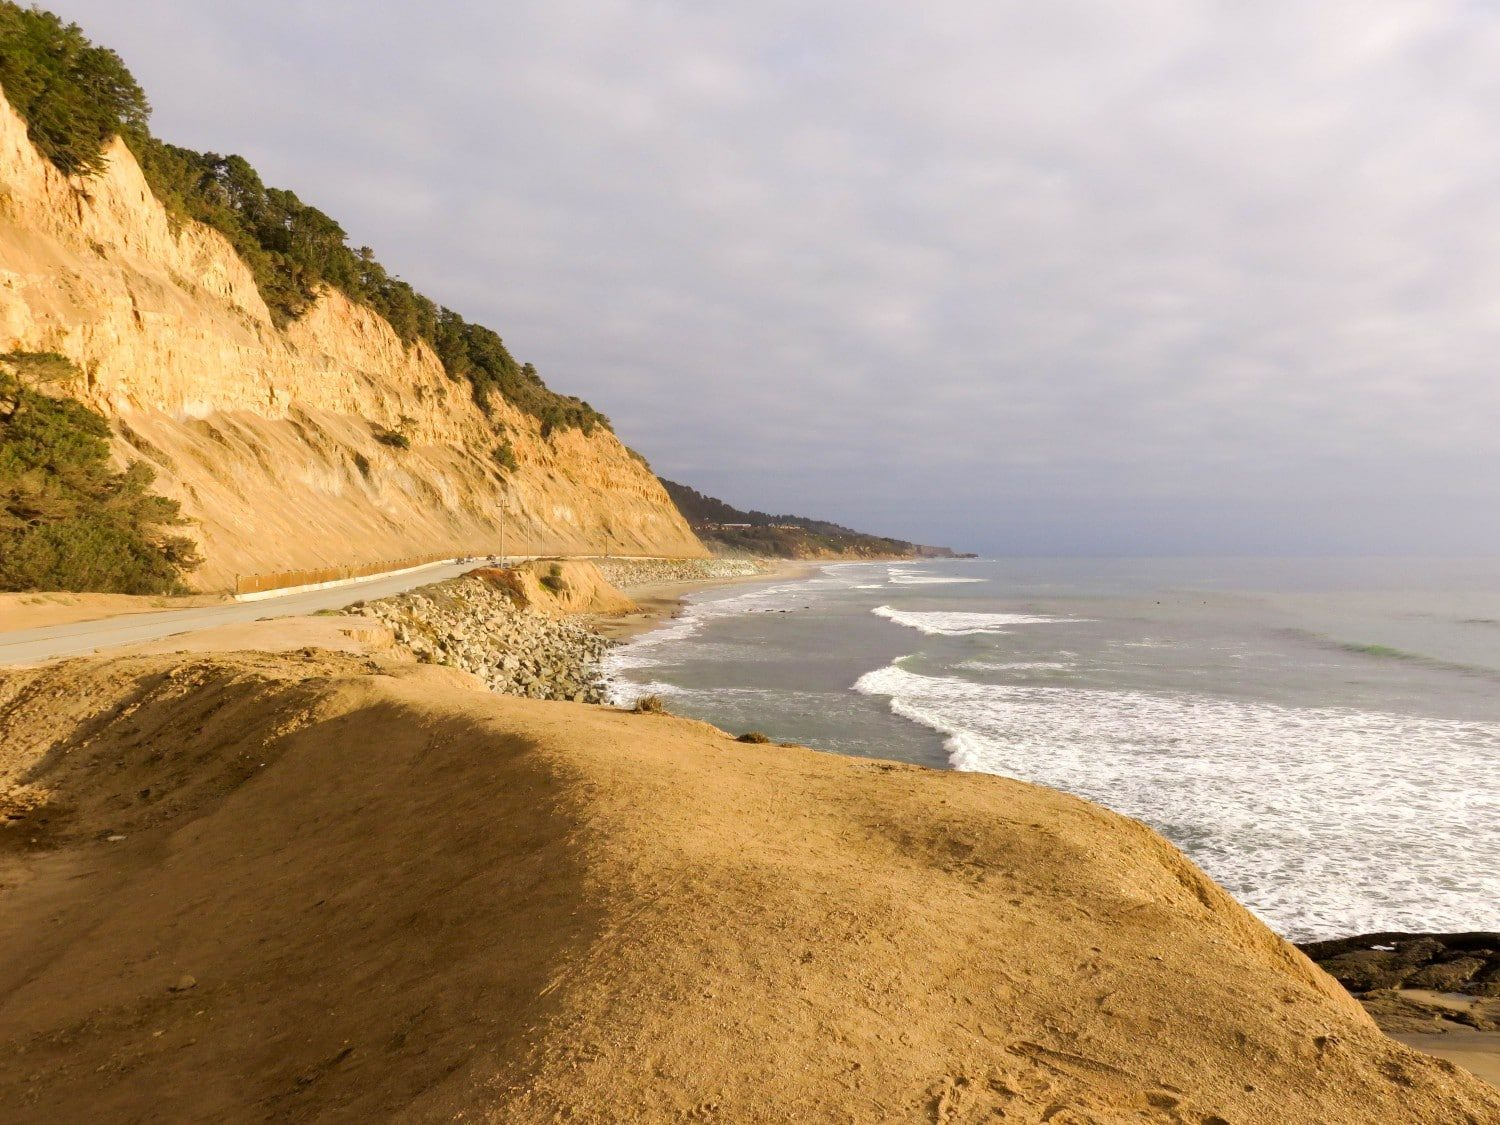 Oregon coastline. West Coast USA Road Trip Guide. Everything you need to know to plan your Highway 1 road trip. Read now.